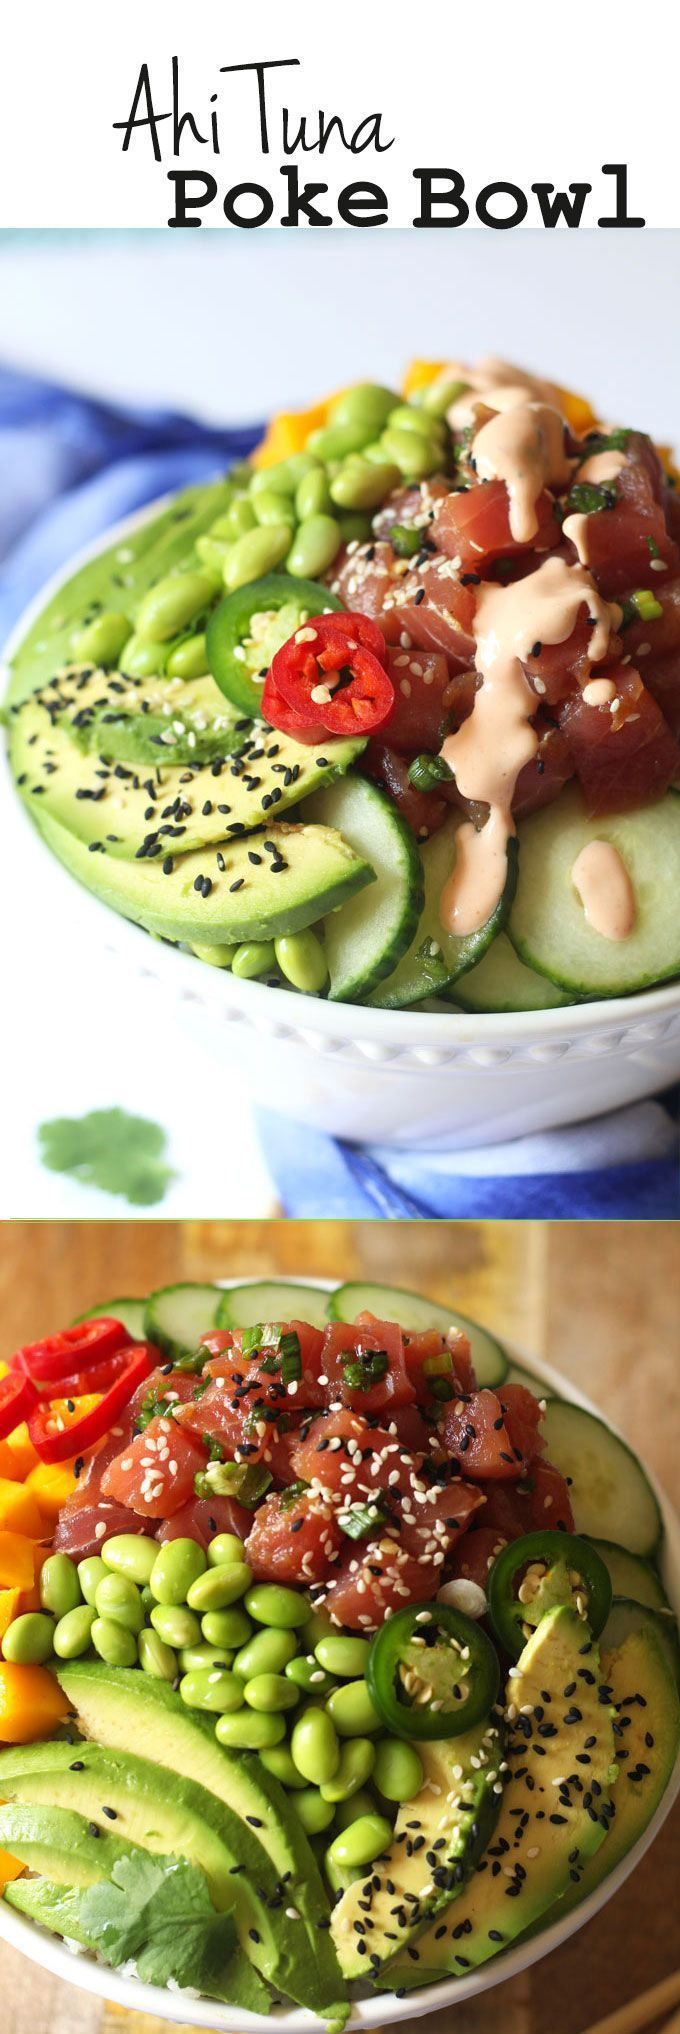 Hawaiian Style Homemade Poke Bowls are loaded with the freshest citrus ponzu flavored Ahi tuna, rice, cucumbers, avocado, edamame and mango. A drizzle of sriracha sauce and macadamia nuts for crunch are the perfect addition to this Hawaiian favorite